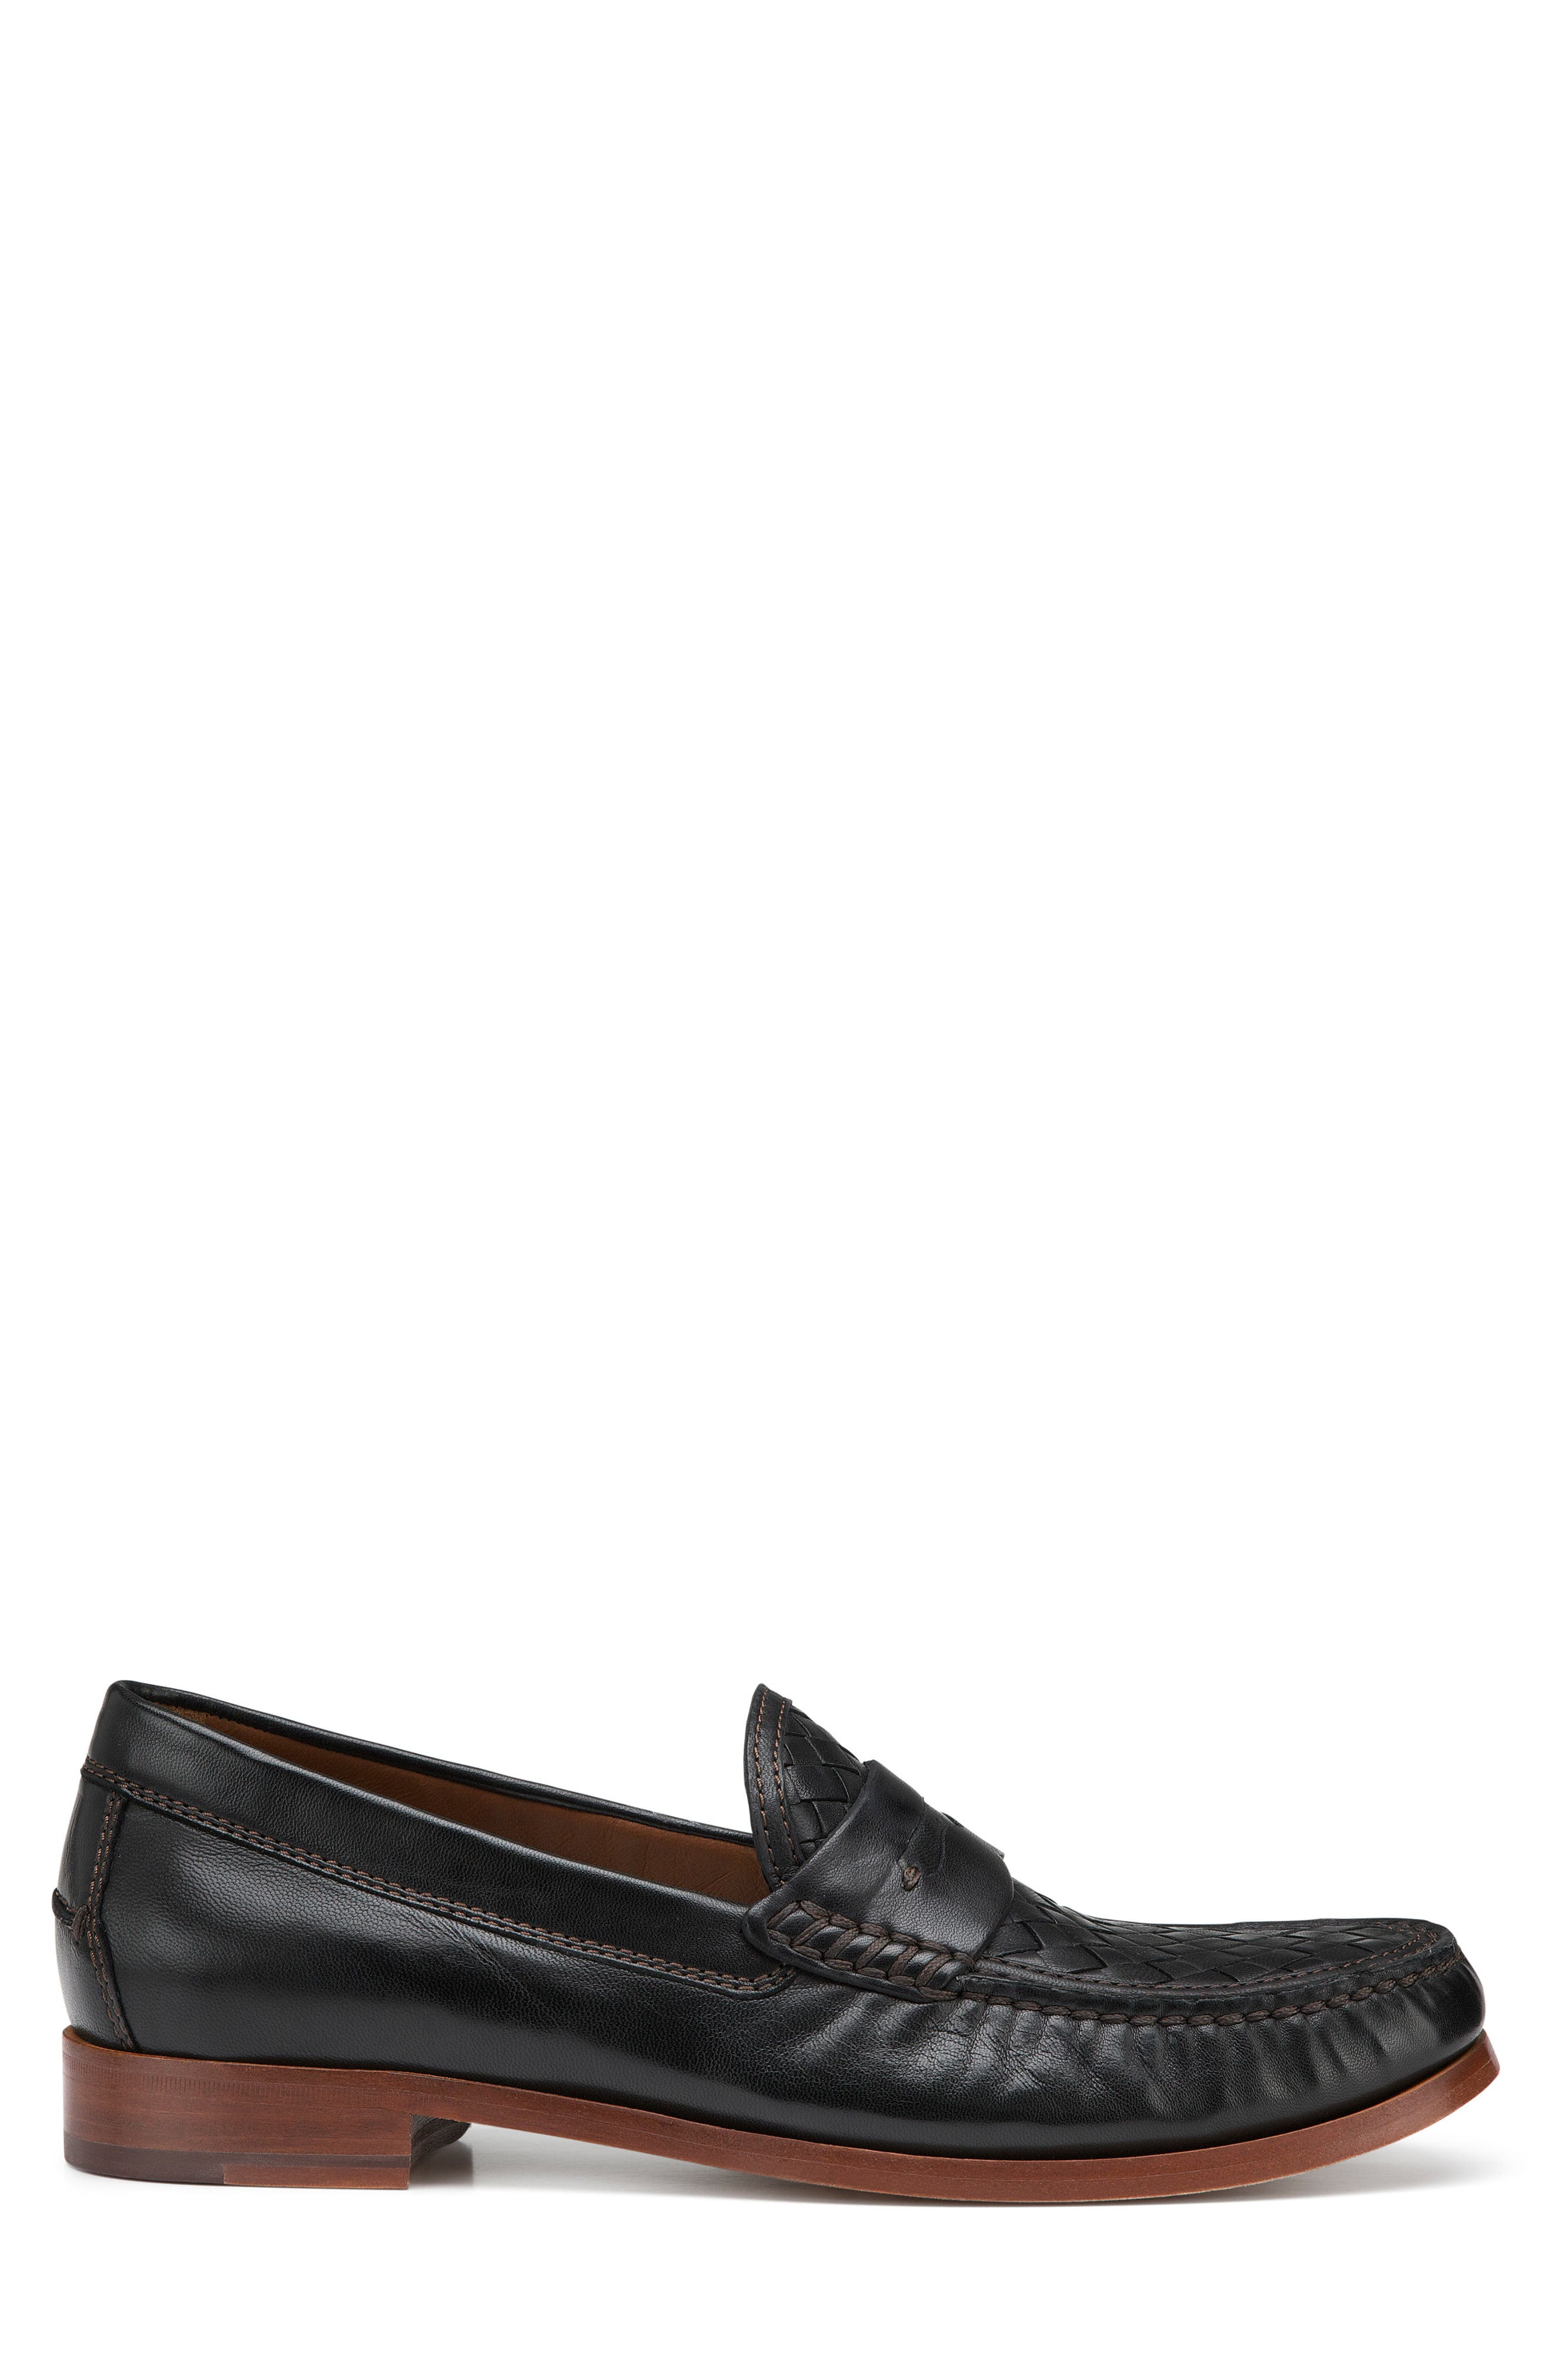 Slade Water Resistant Woven Penny Loafer,                             Alternate thumbnail 3, color,                             Black Leather